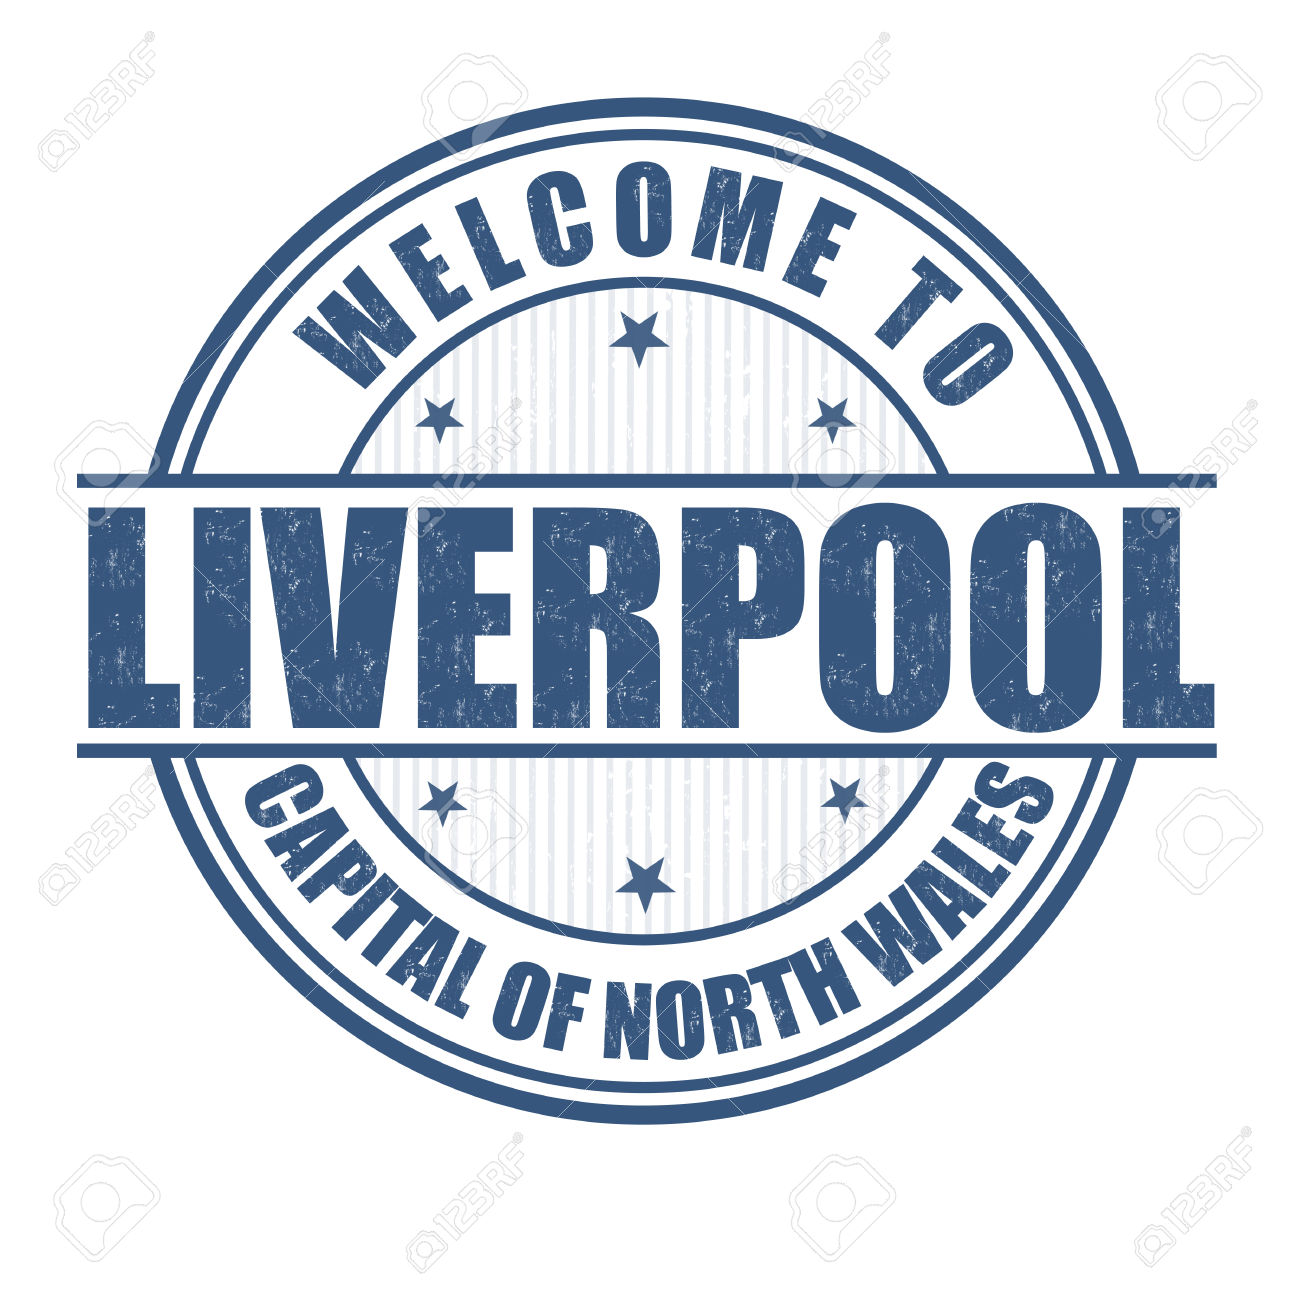 Welcome To Liverpool, Capital Of North Wales Grunge Rubber Stamp.